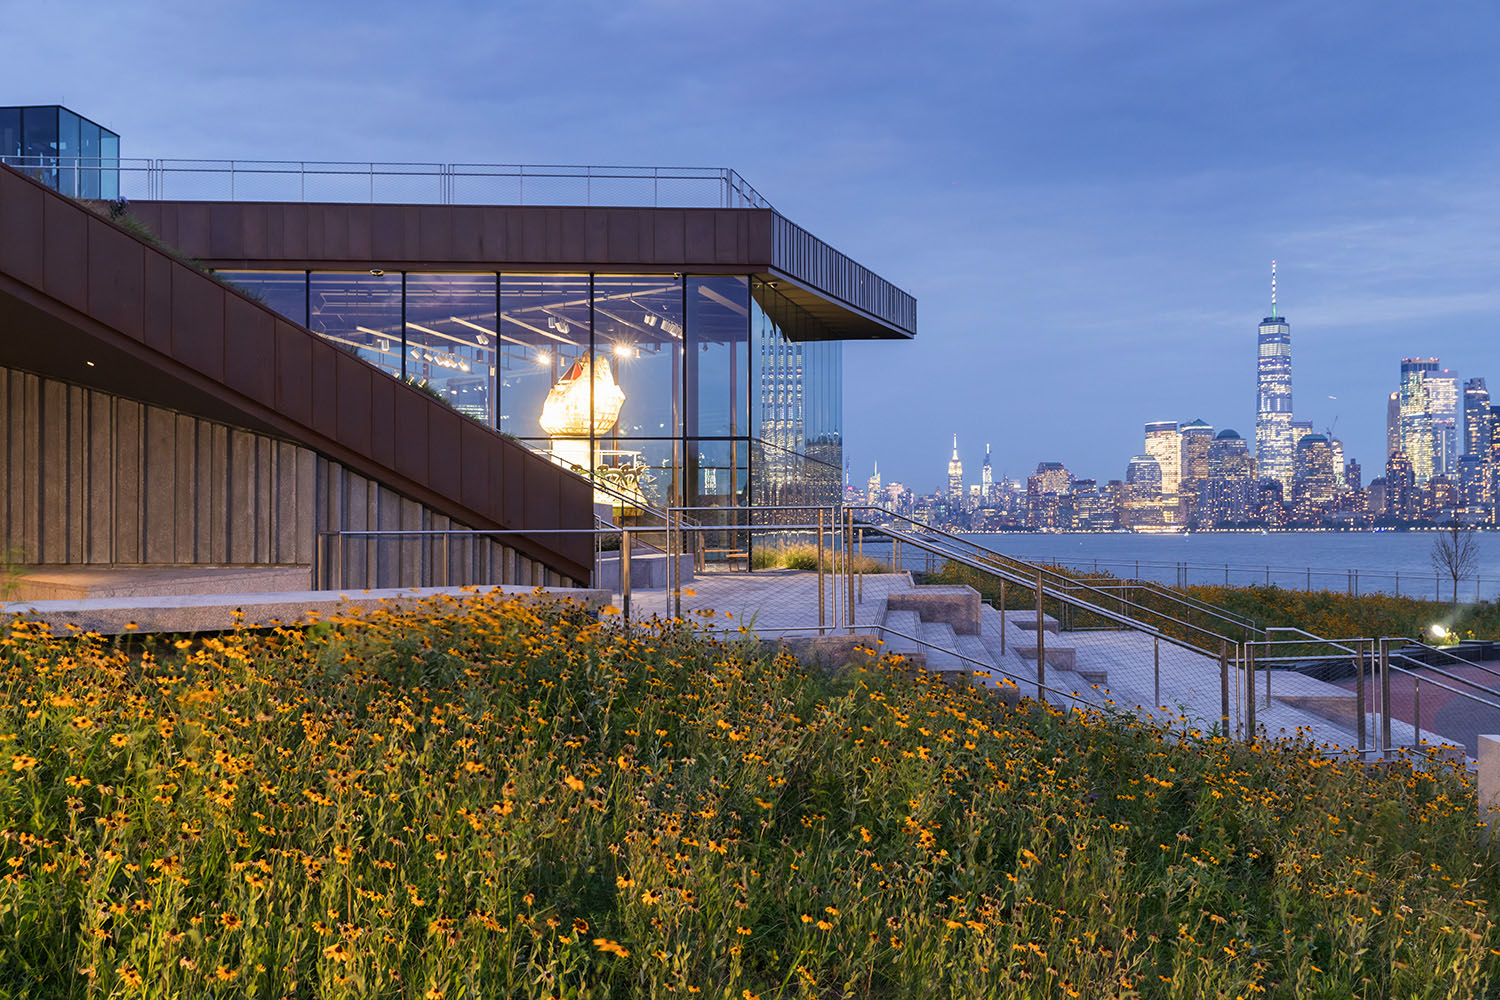 Viewed at dusk: artful composition of the museum, the torch, meadow of native flowers, and Manhattan skyline beyond. Copyright Iwan Baan